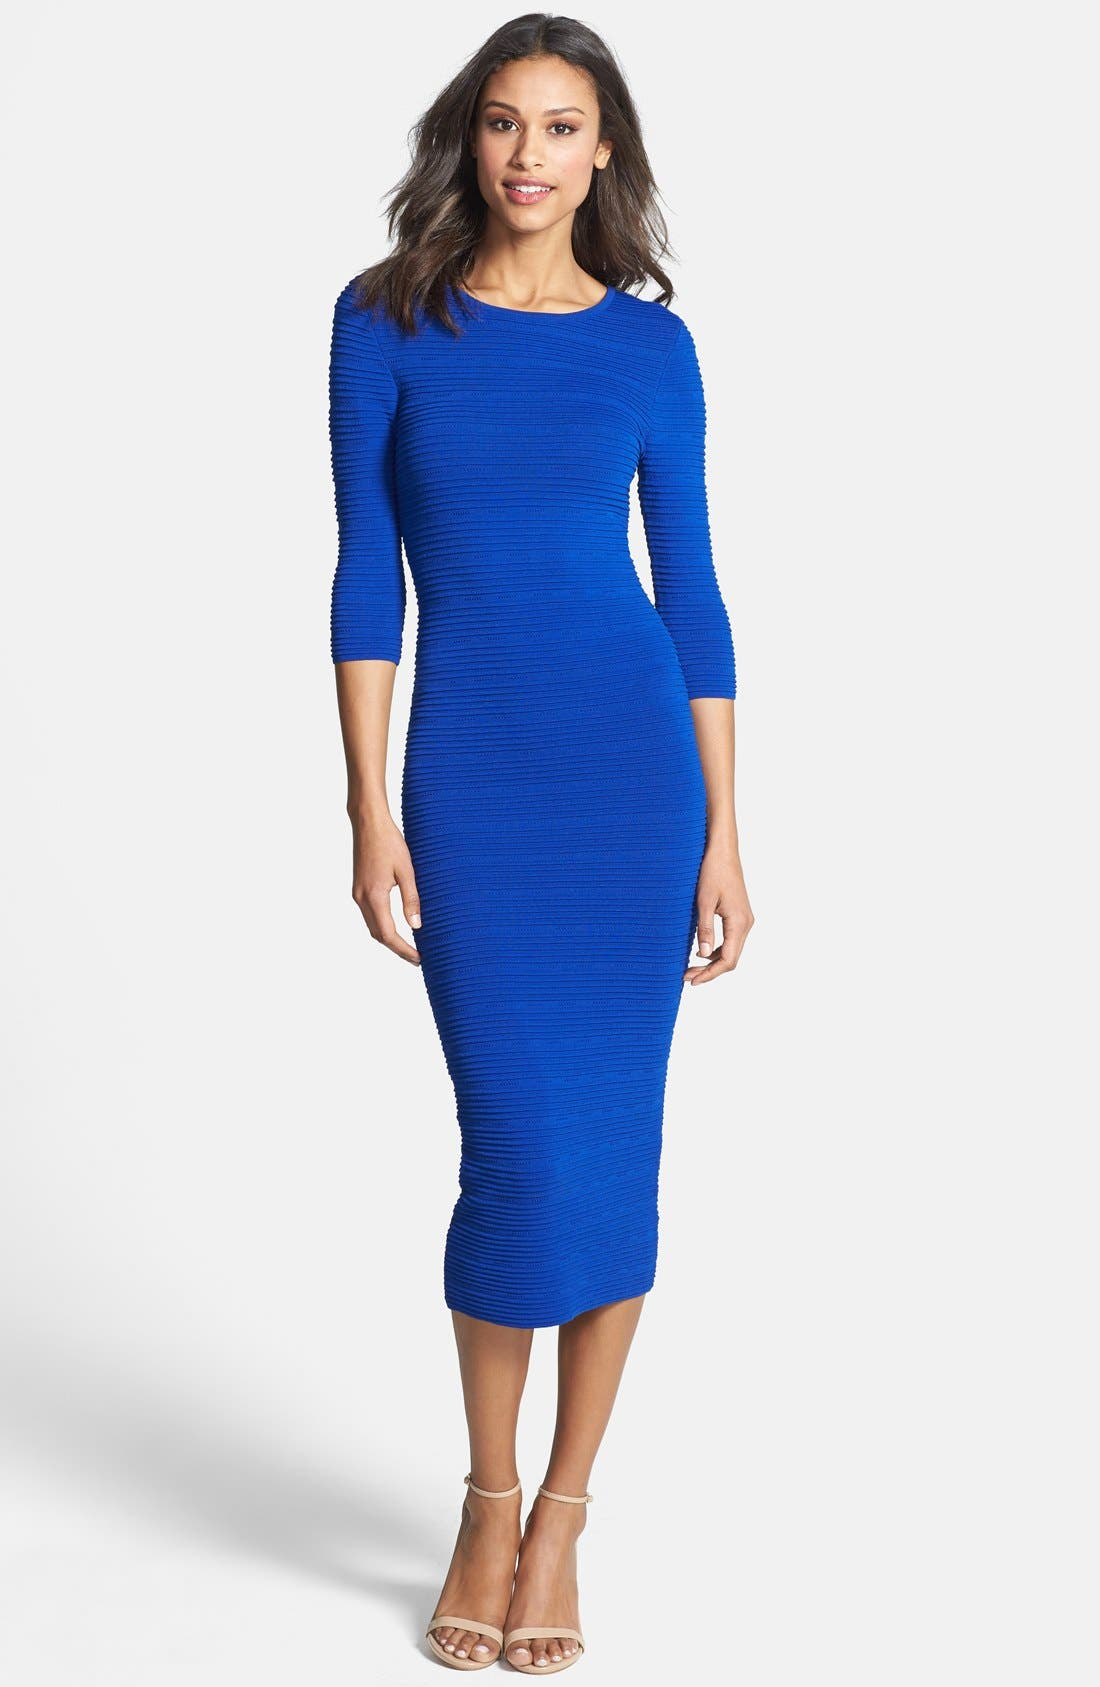 Alternate Image 1 Selected - Felicity & Coco Knit Body-Con Midi Dress (Nordstrom Exclusive)